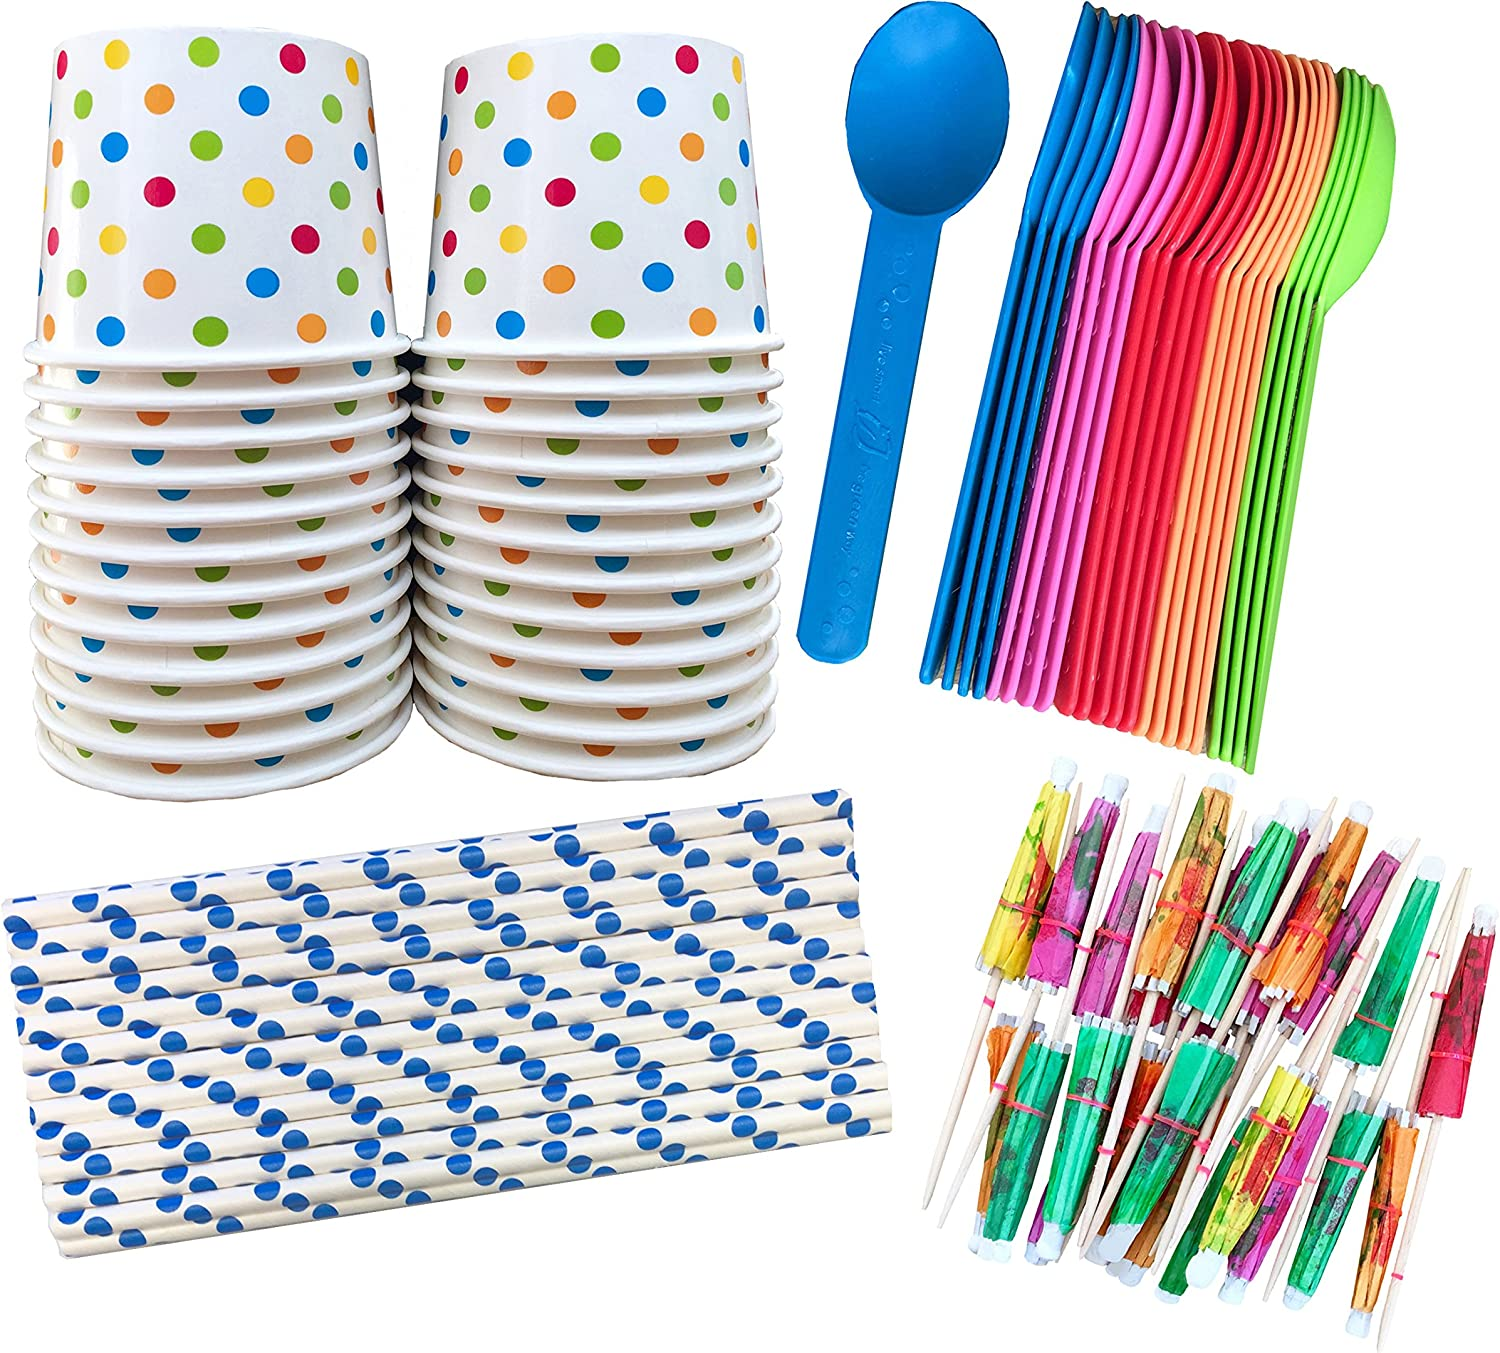 Ice Cream Sundae Kit - 12 Ounce Polka Dot Paper Treat Cups -Heavyweight Plastic Spoons - Paper Straws - Paper Umbrellas - 24 Each - Blue, Pink, Orange, Yellow, Green Outside the Box Papers Brand